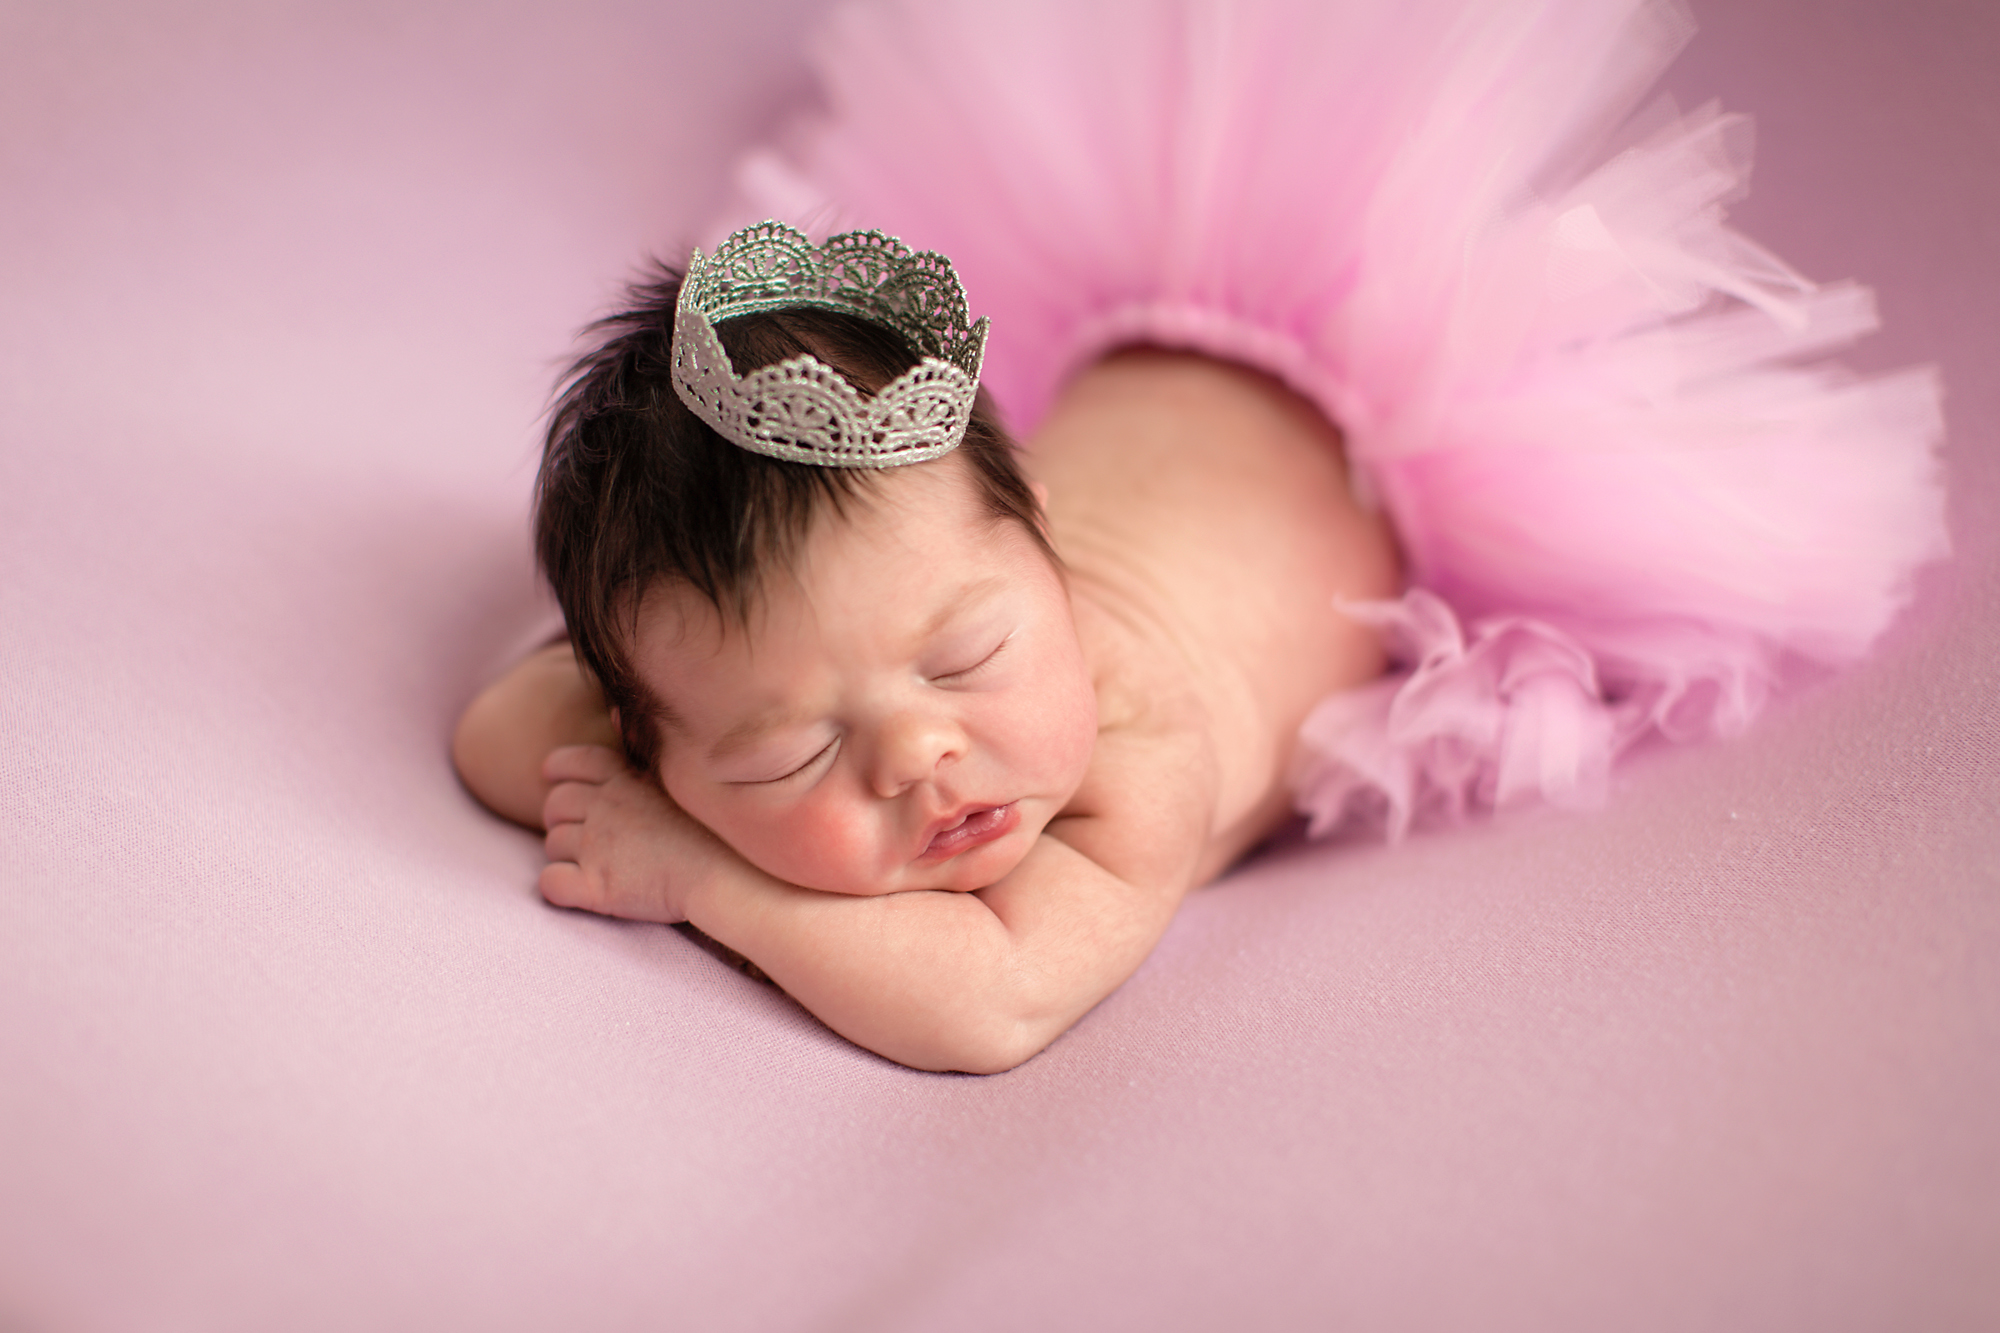 Newborn baby girl photoshoot idea. Tutu and a crown - baby girl is posed on a beanbag wearing a crown and a pink tutu. Calgary photographer